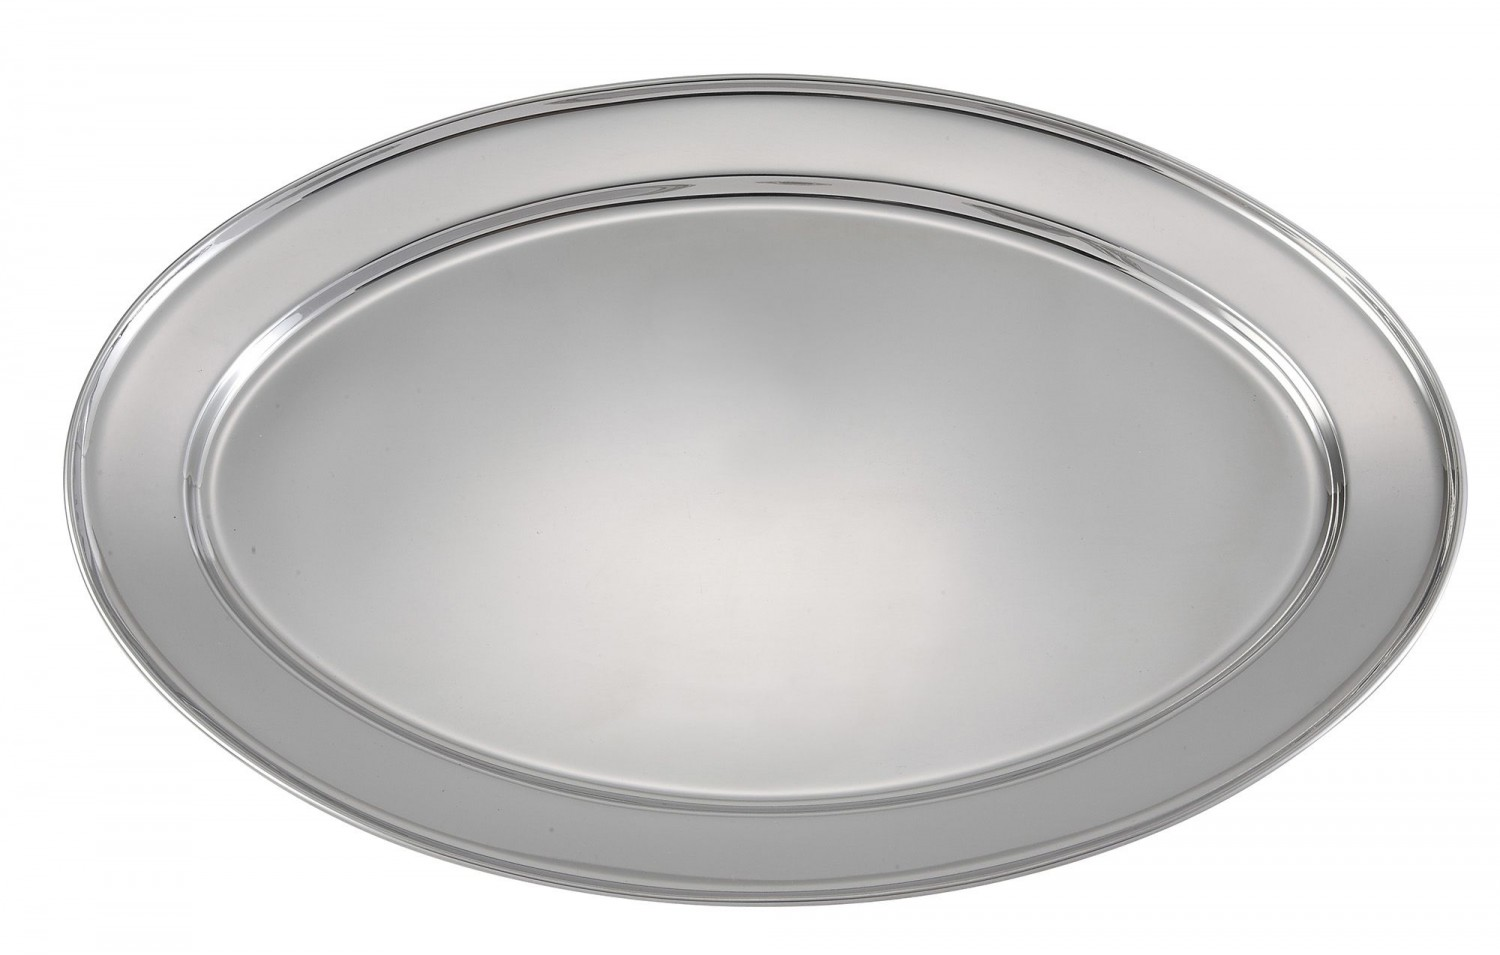 Winco OPL-20 Oval Stainless Steel Platter 19-5/8& x 13-1/2&quot ;